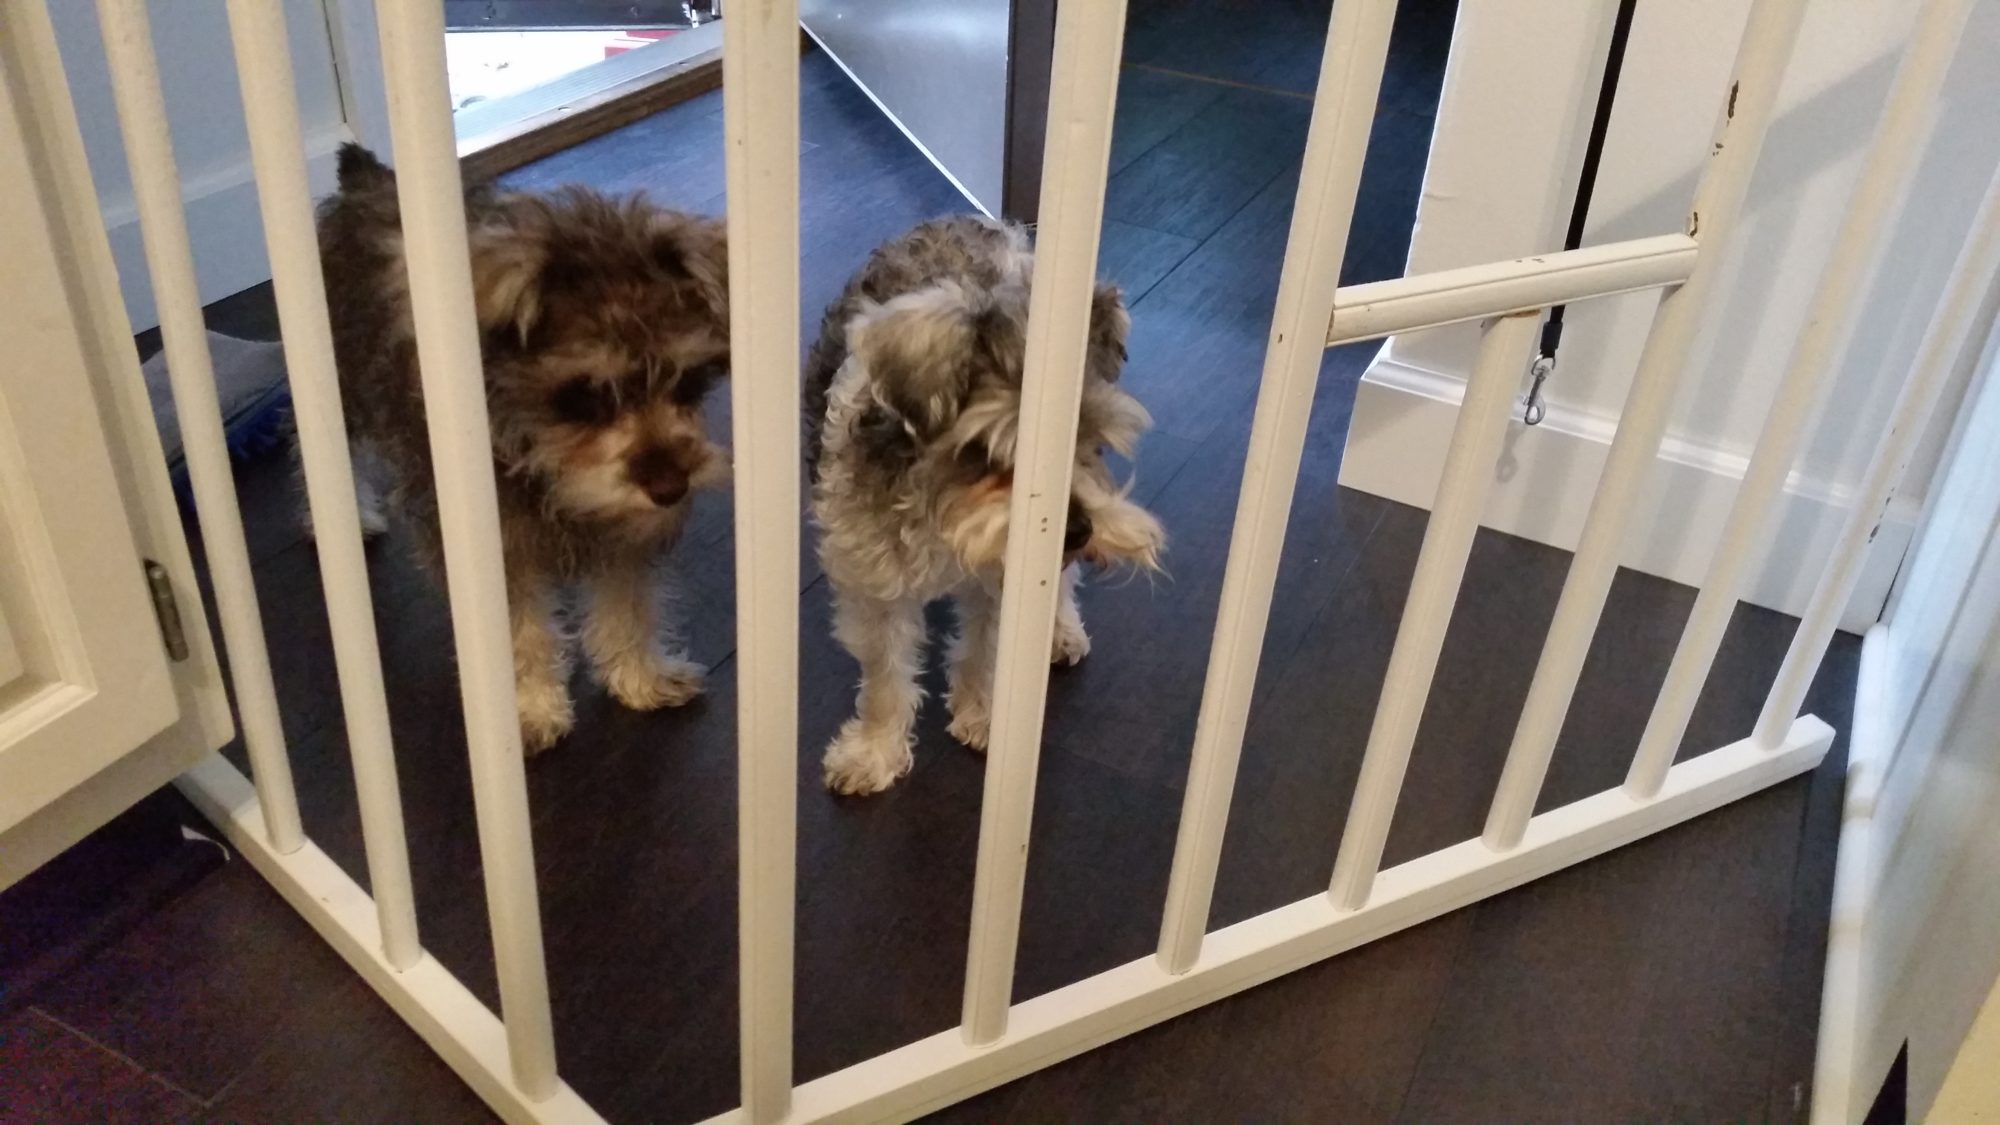 recreate doggy remove a gate pin crib of baby the used with long puppy cribs sides